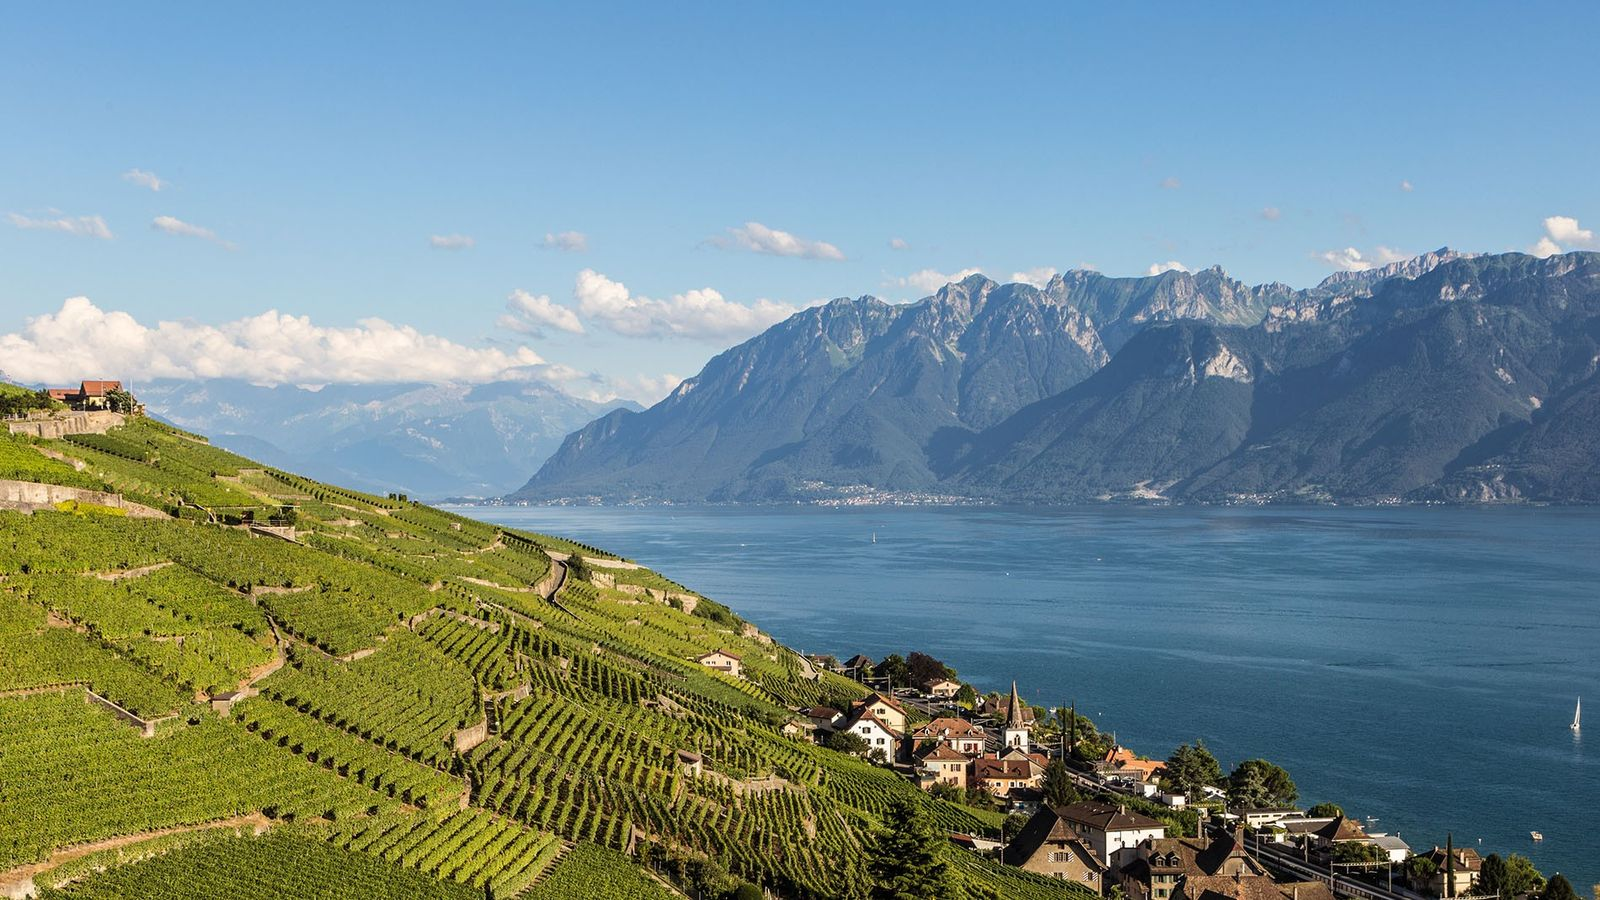 Terraced vineyards in Lavaux, a UNESCO World Heritage Site